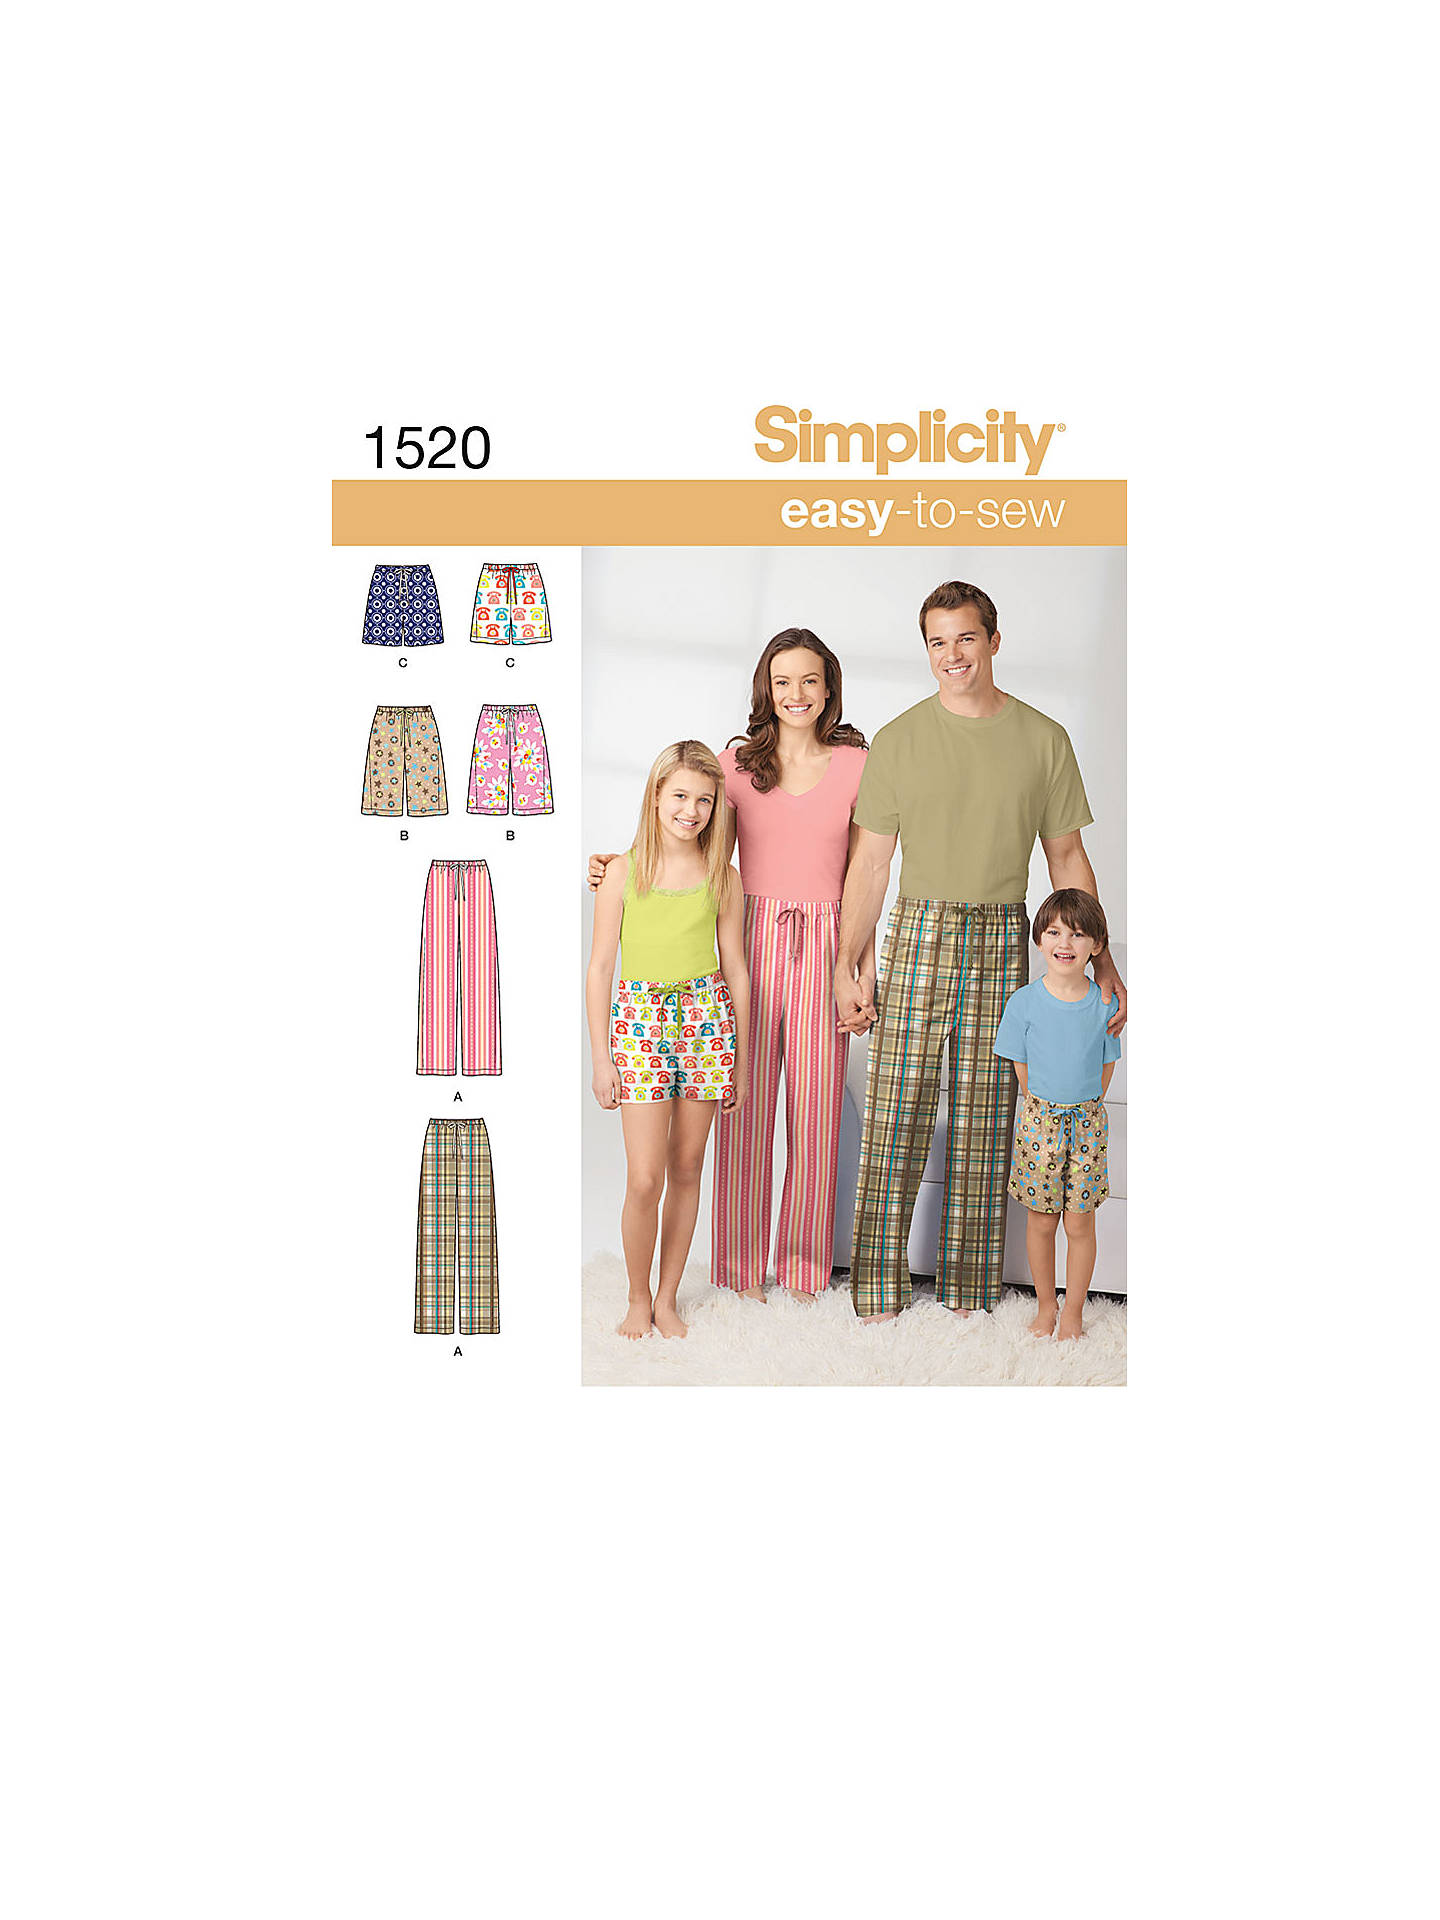 Simplicity Easy-to-Sew Unisex Sewing Pattern, 1520, A